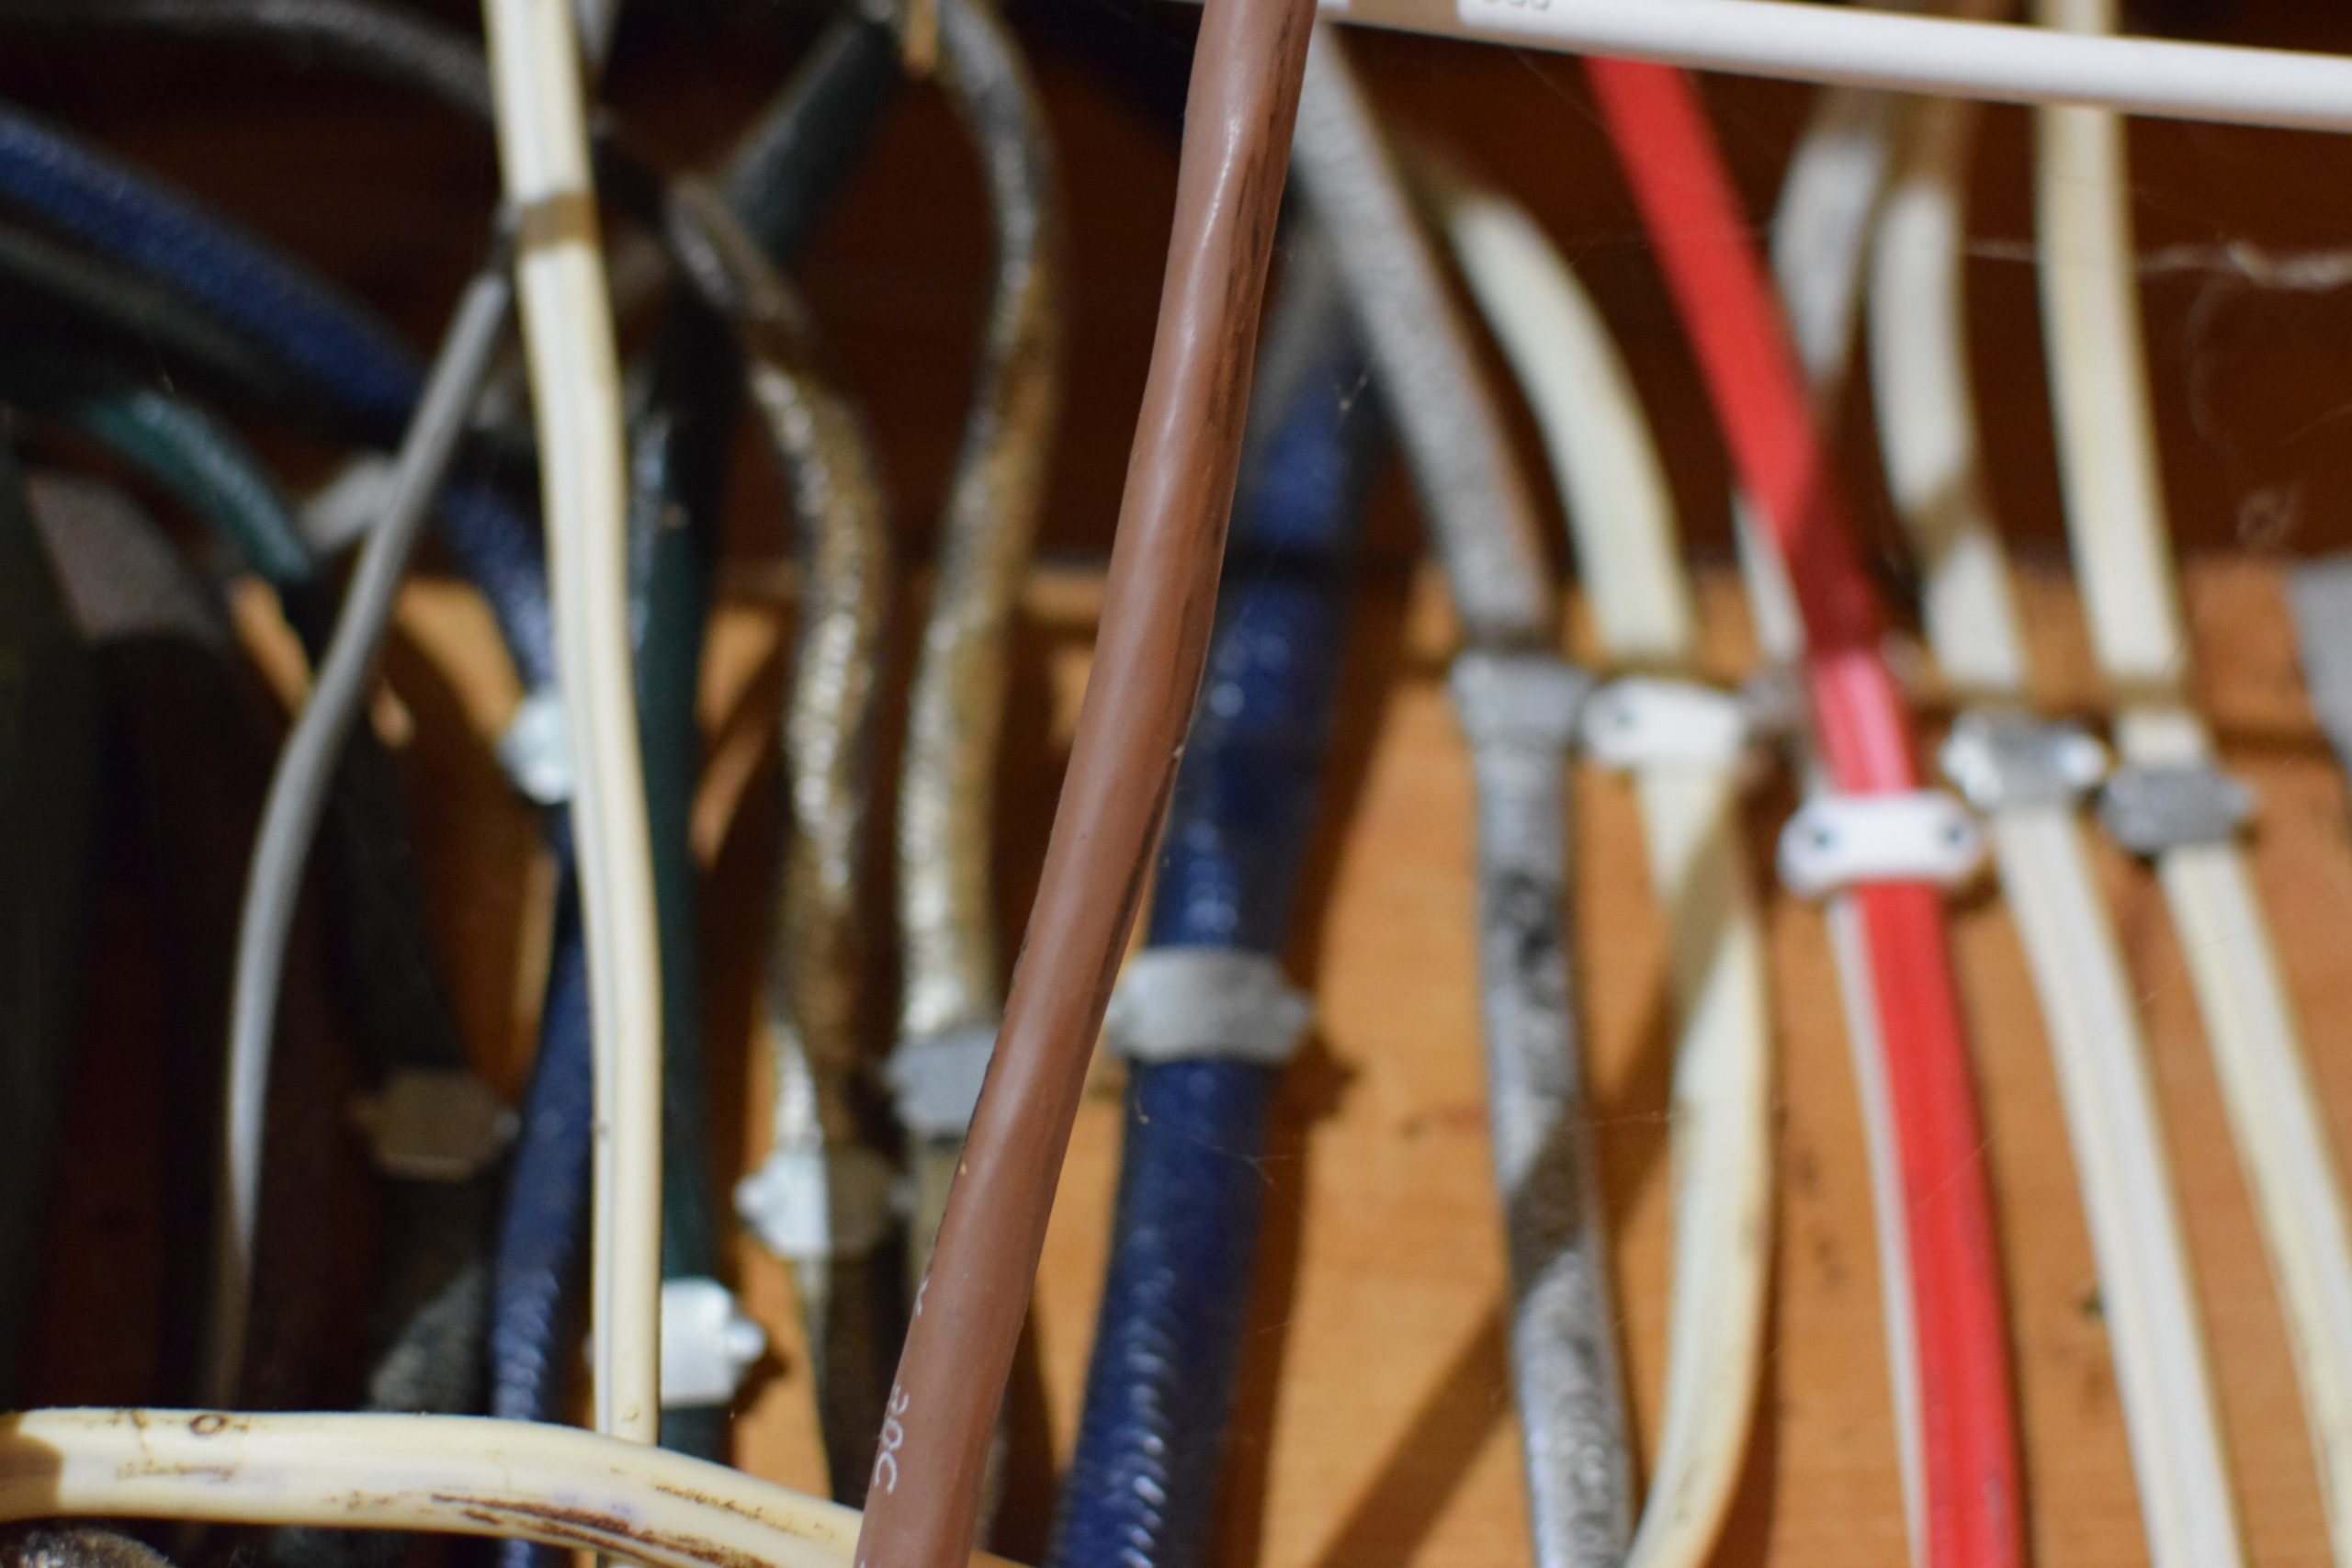 red, white, blue, brown and silver vertical electrical wires in utility room